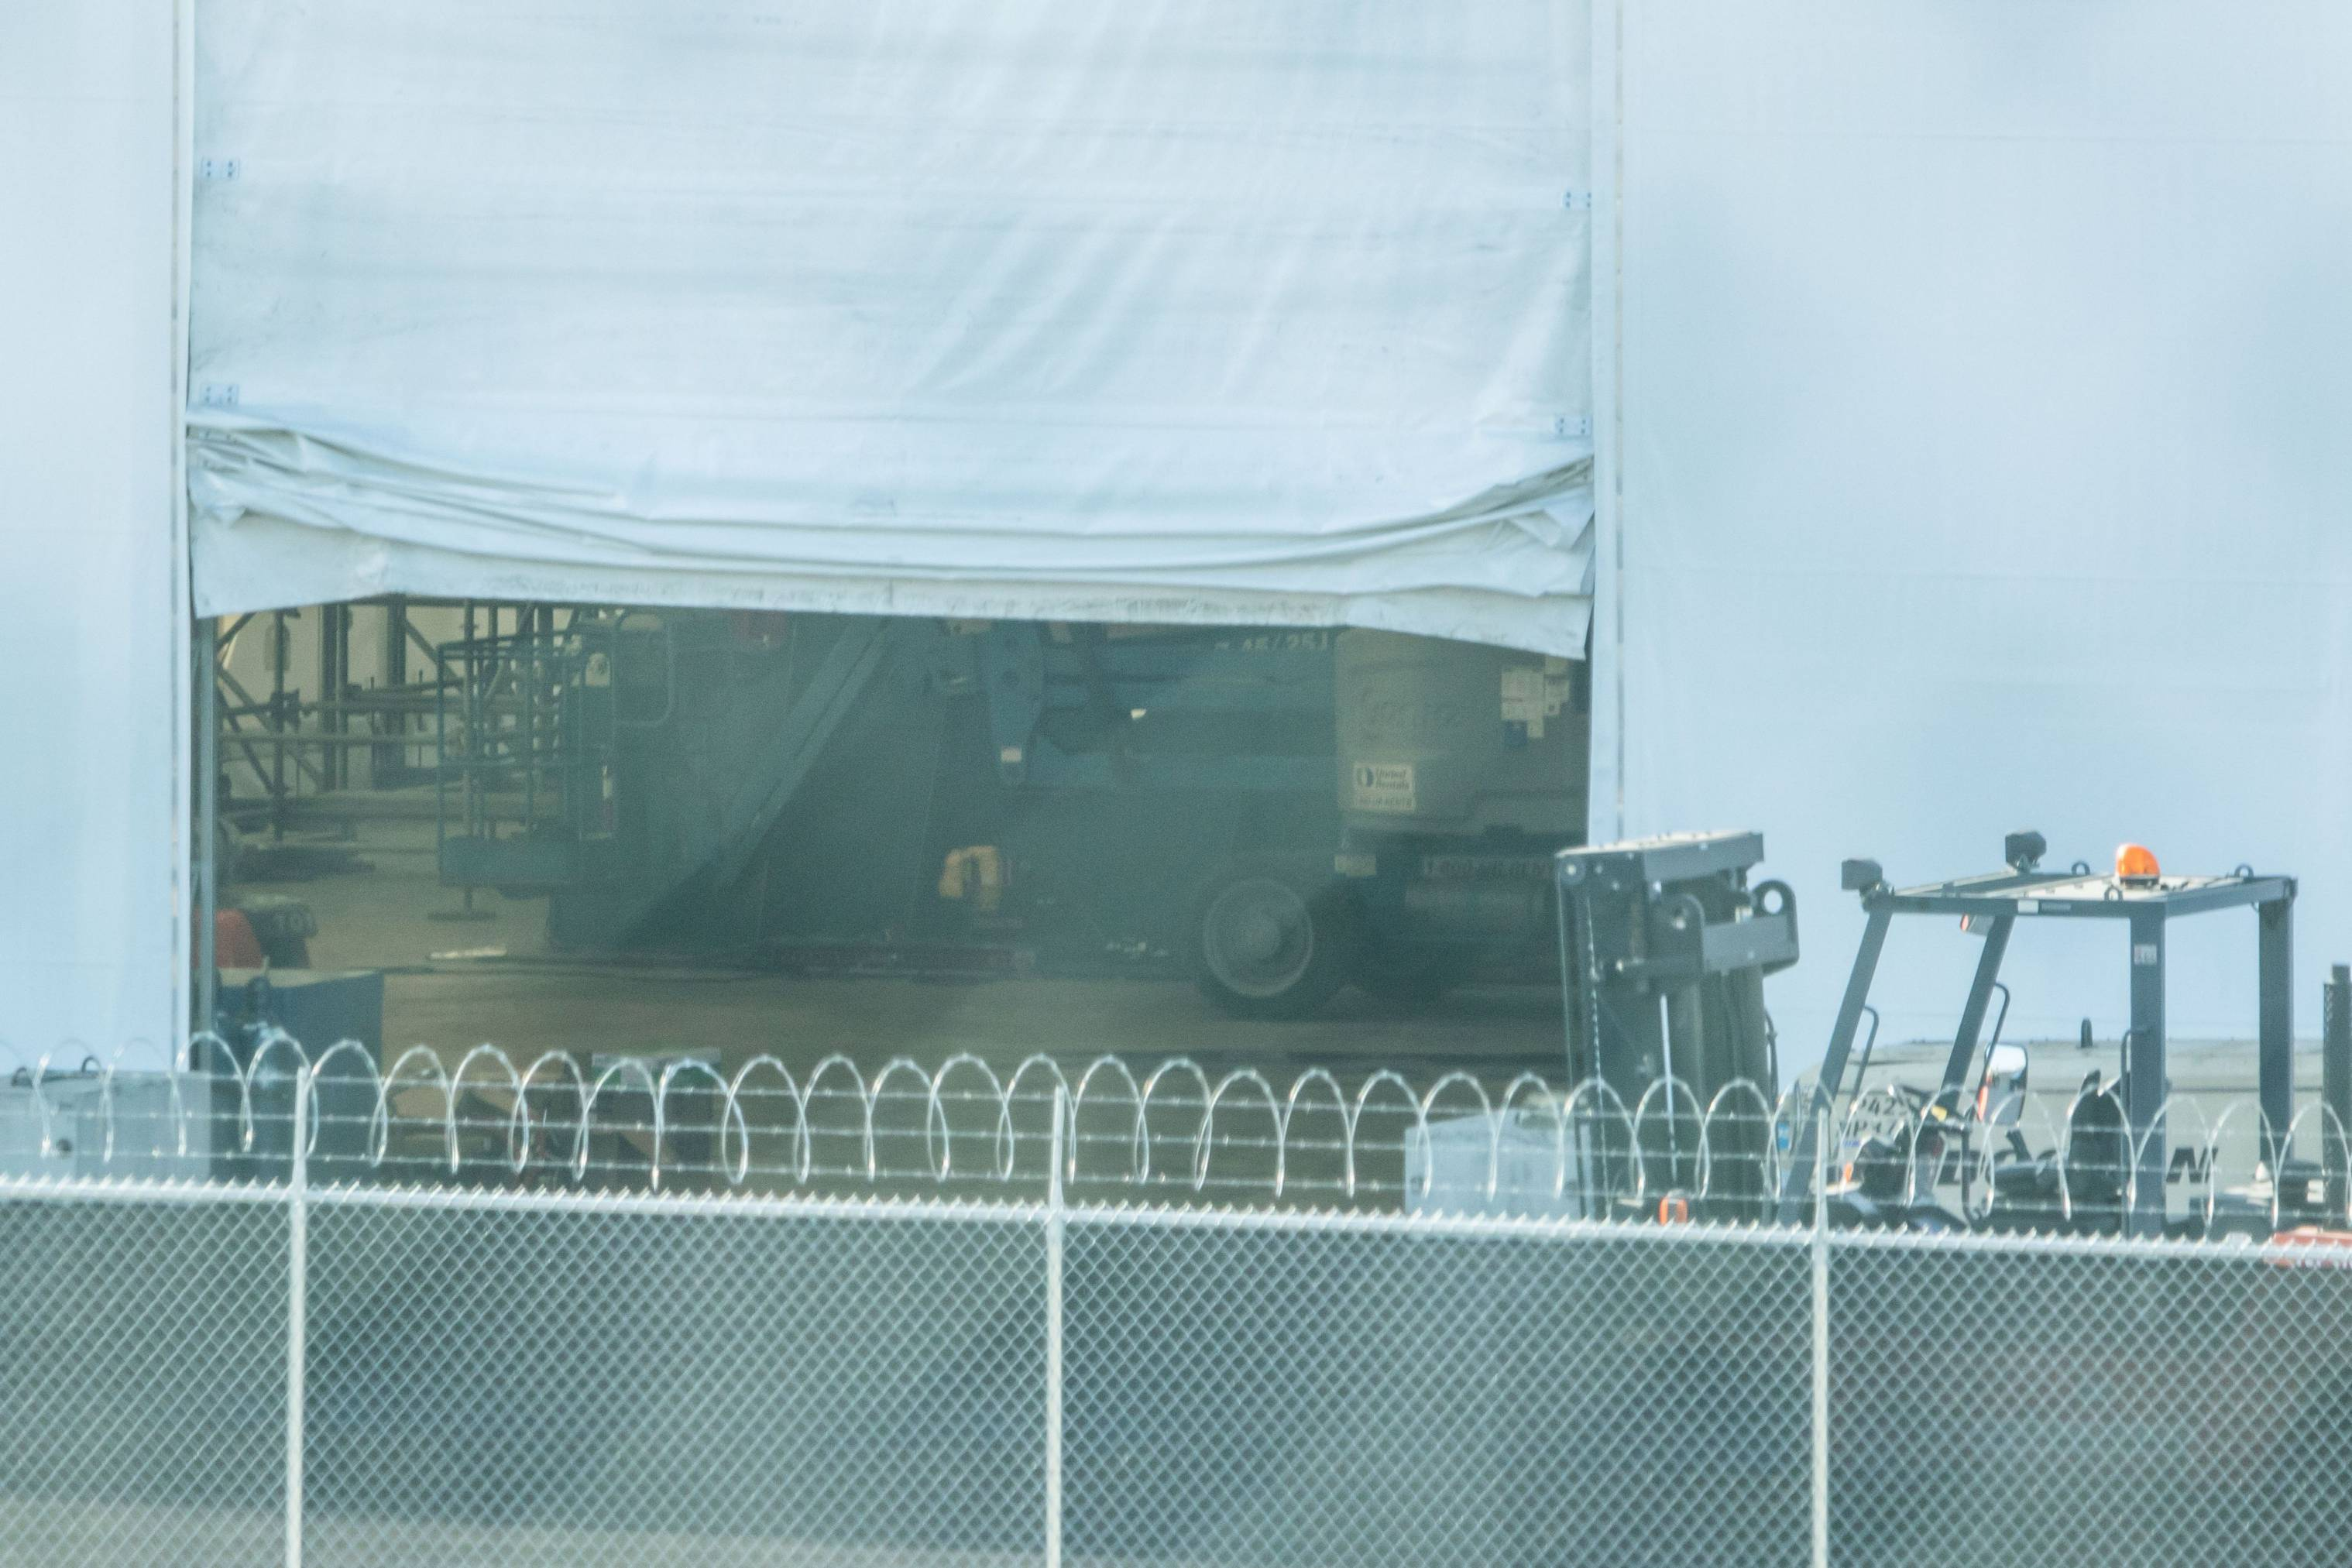 SpaceX BFR tent inside 4 (Pauline Acalin)